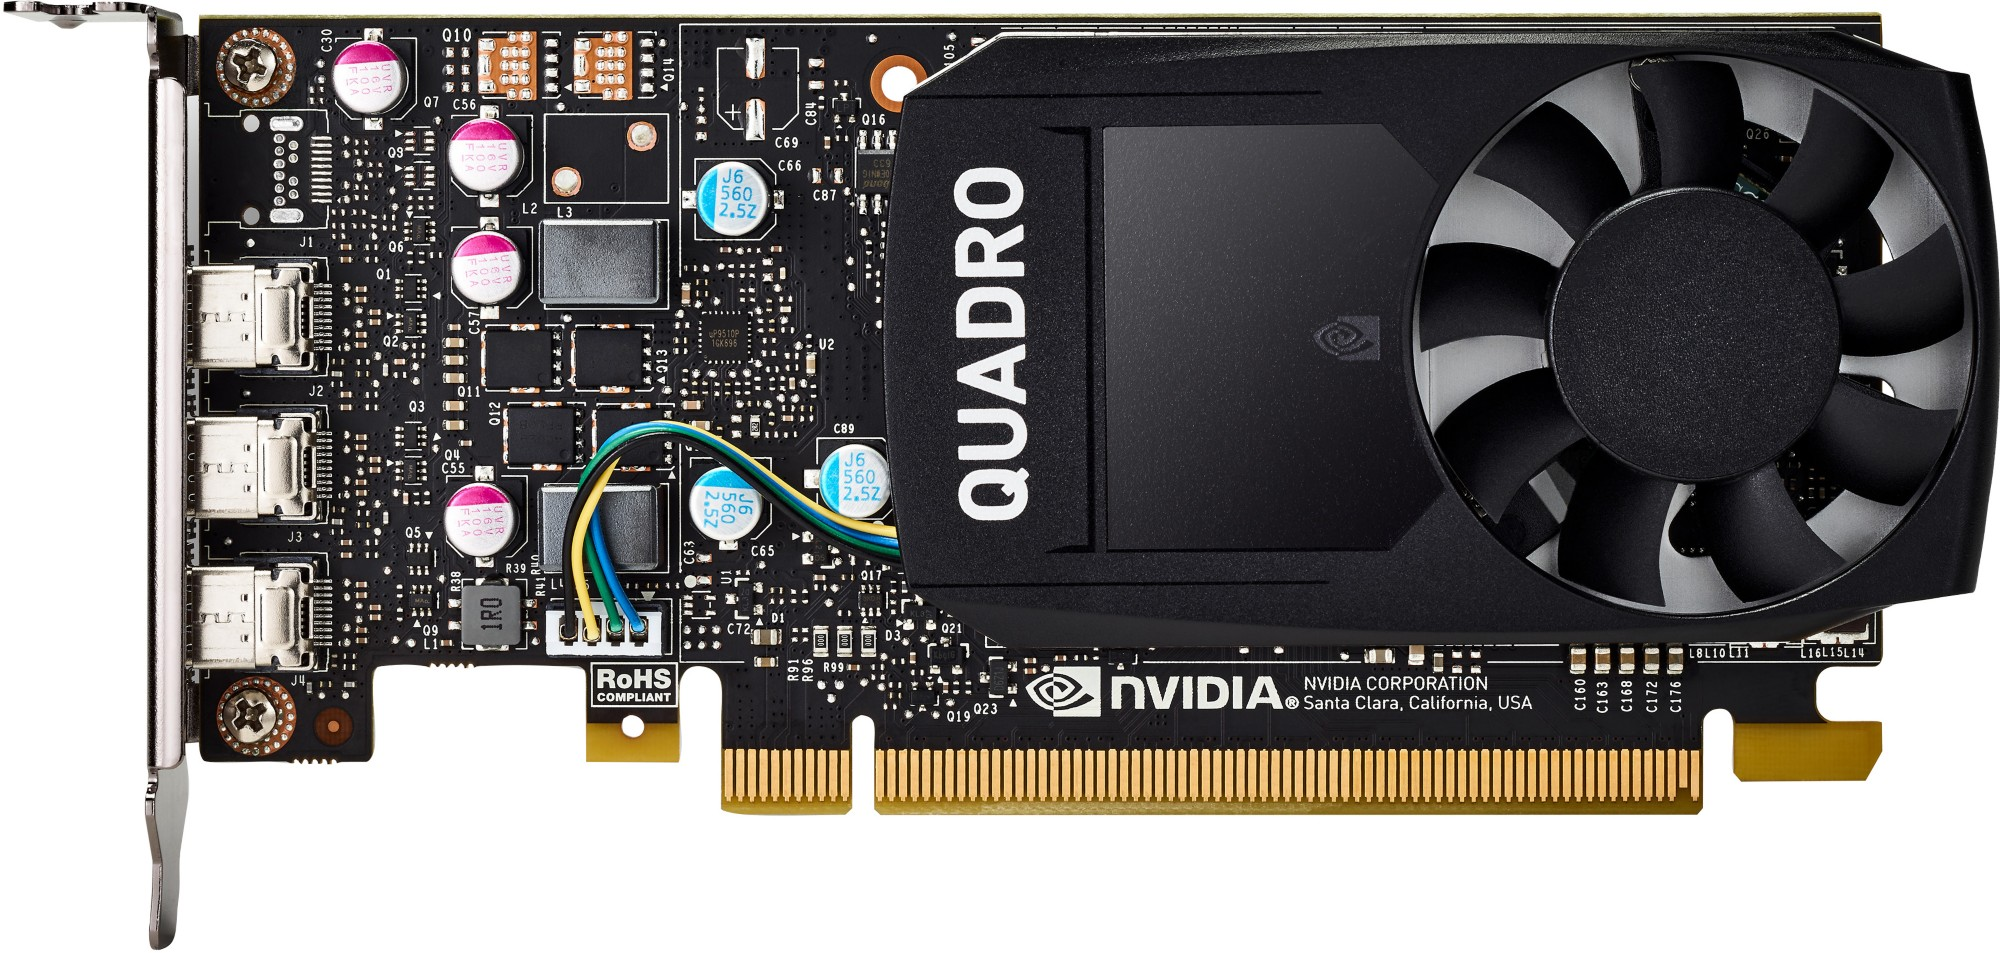 HP 1ME40AT NVIDIA QUADRO P4000 (8GB) GRAPHICS CARD